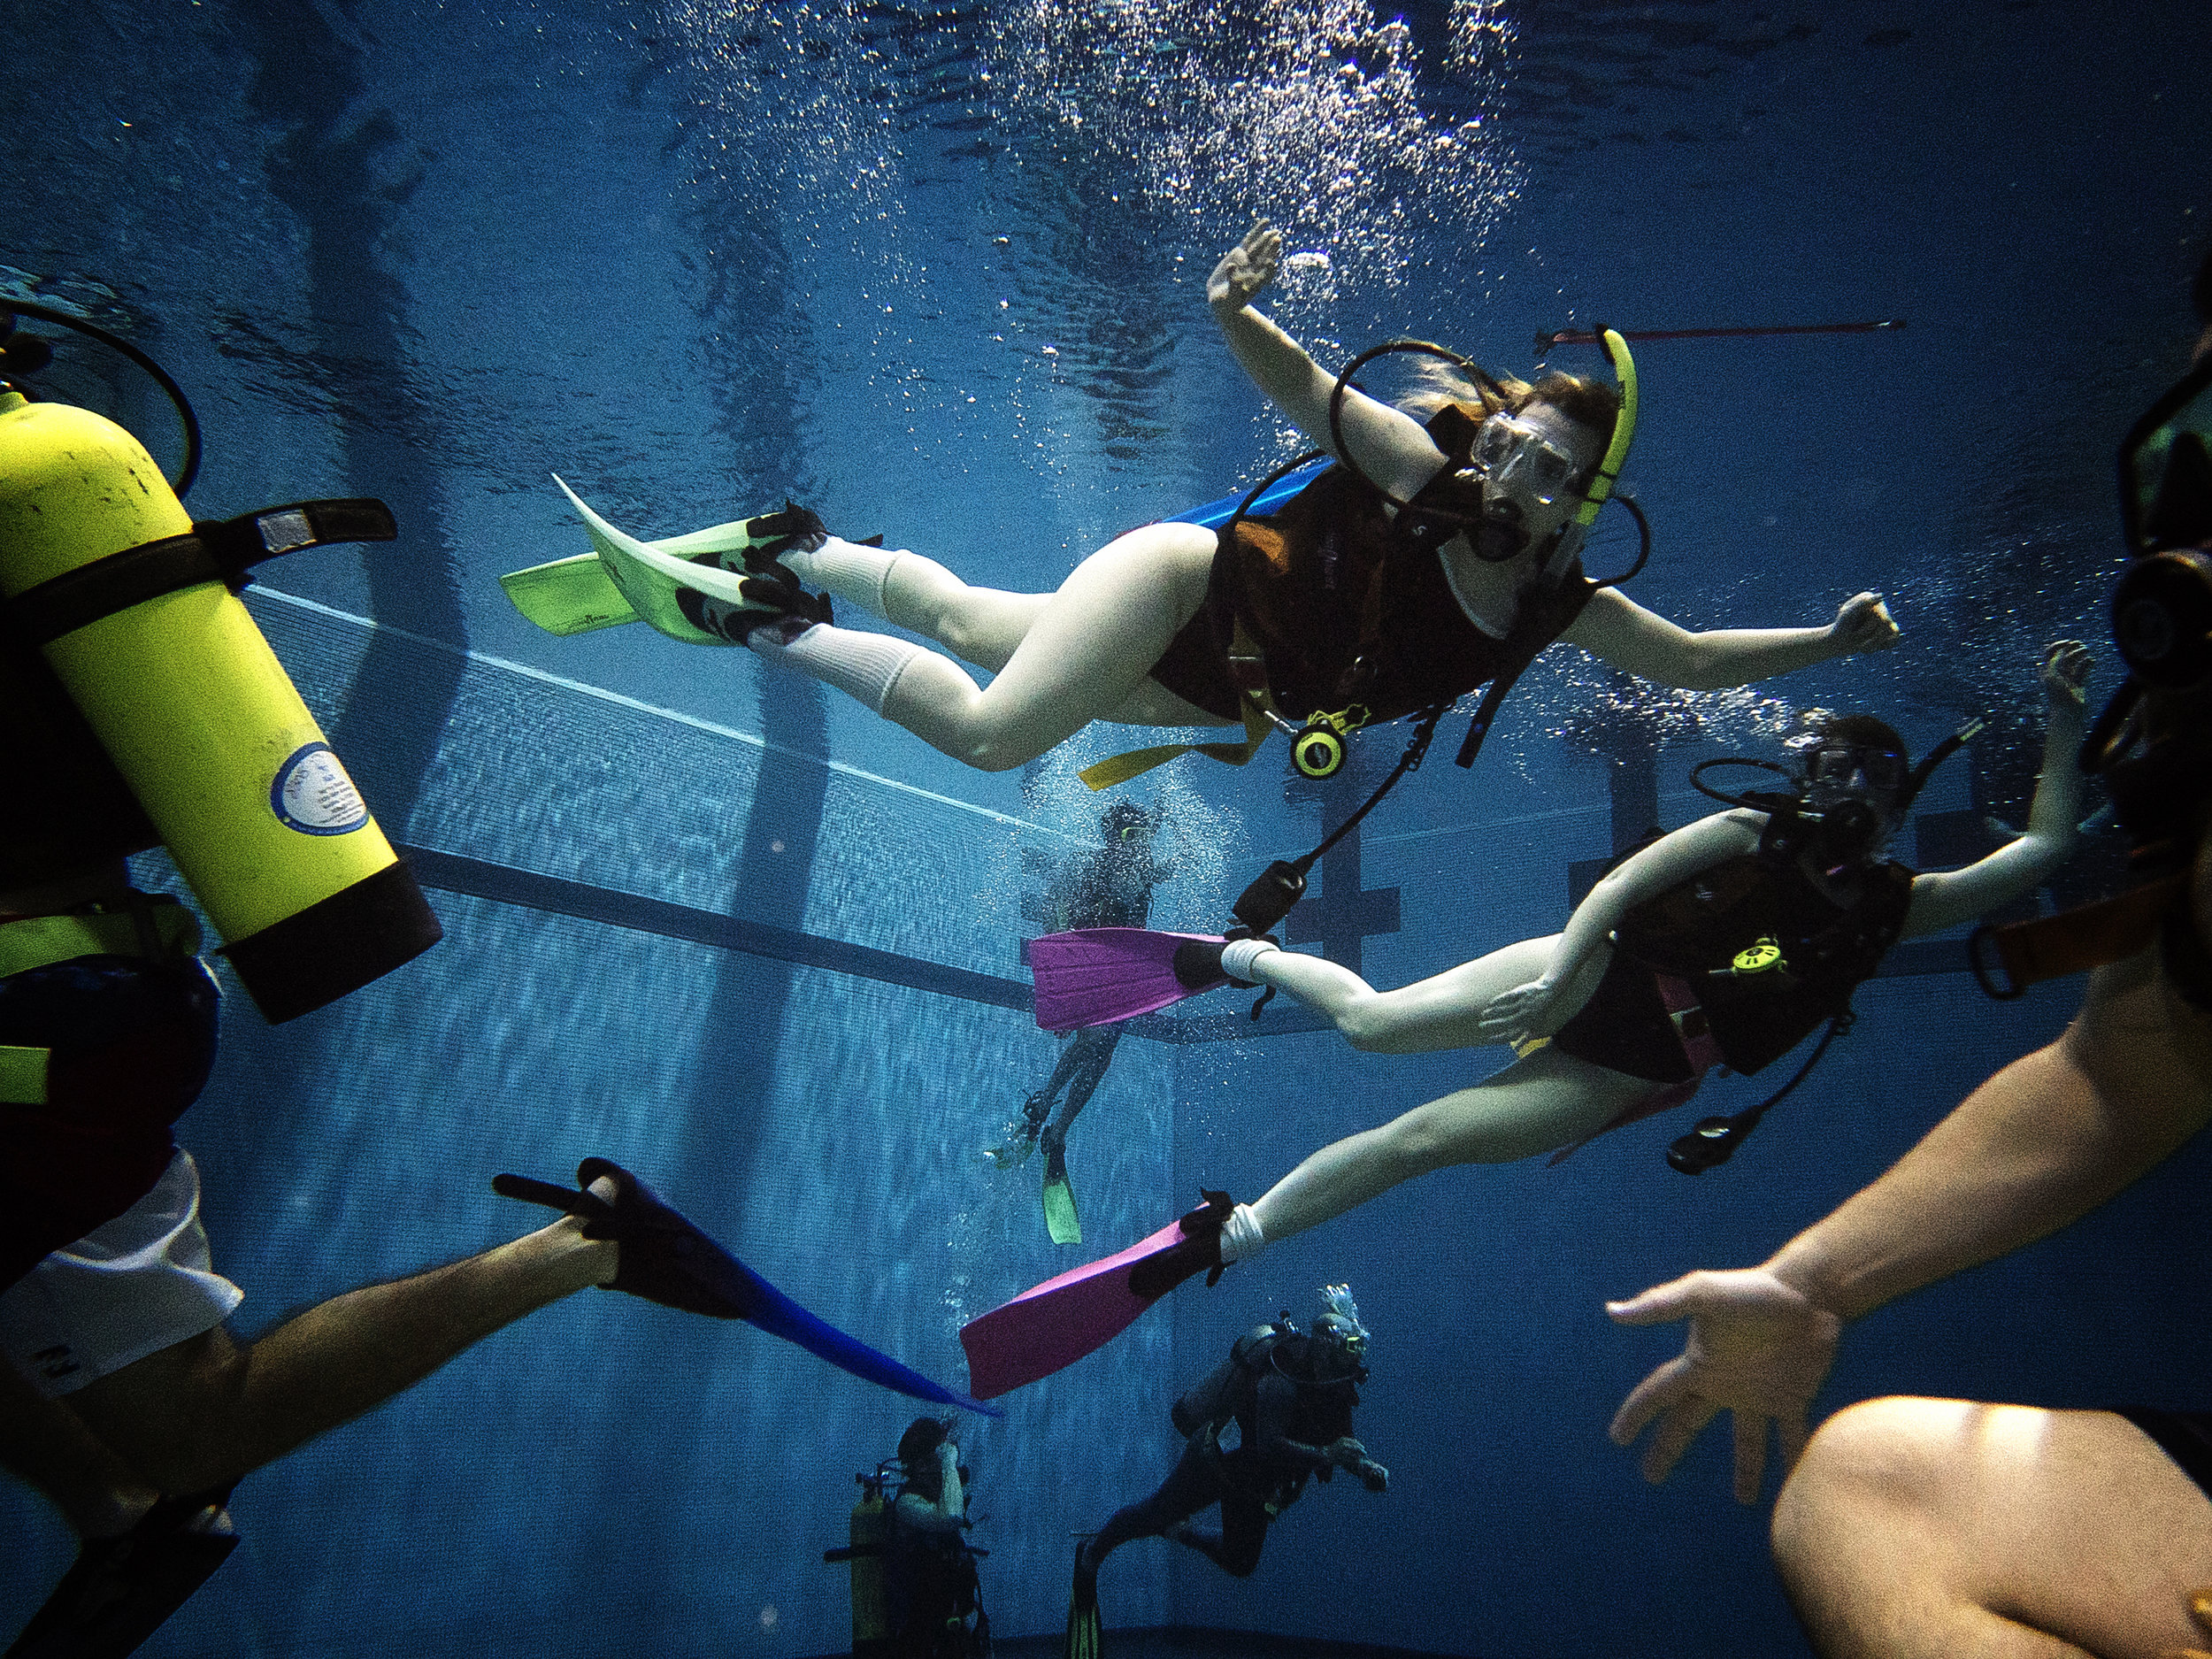 Students enjoy a period of free swimming at the CRWC in Iowa City on Tuesday, April 24, 2018. This was one of the class' last practice sessions before their open water certification at Lake Pearl, Illinois this summer. (James Year/The Daily Iowan)